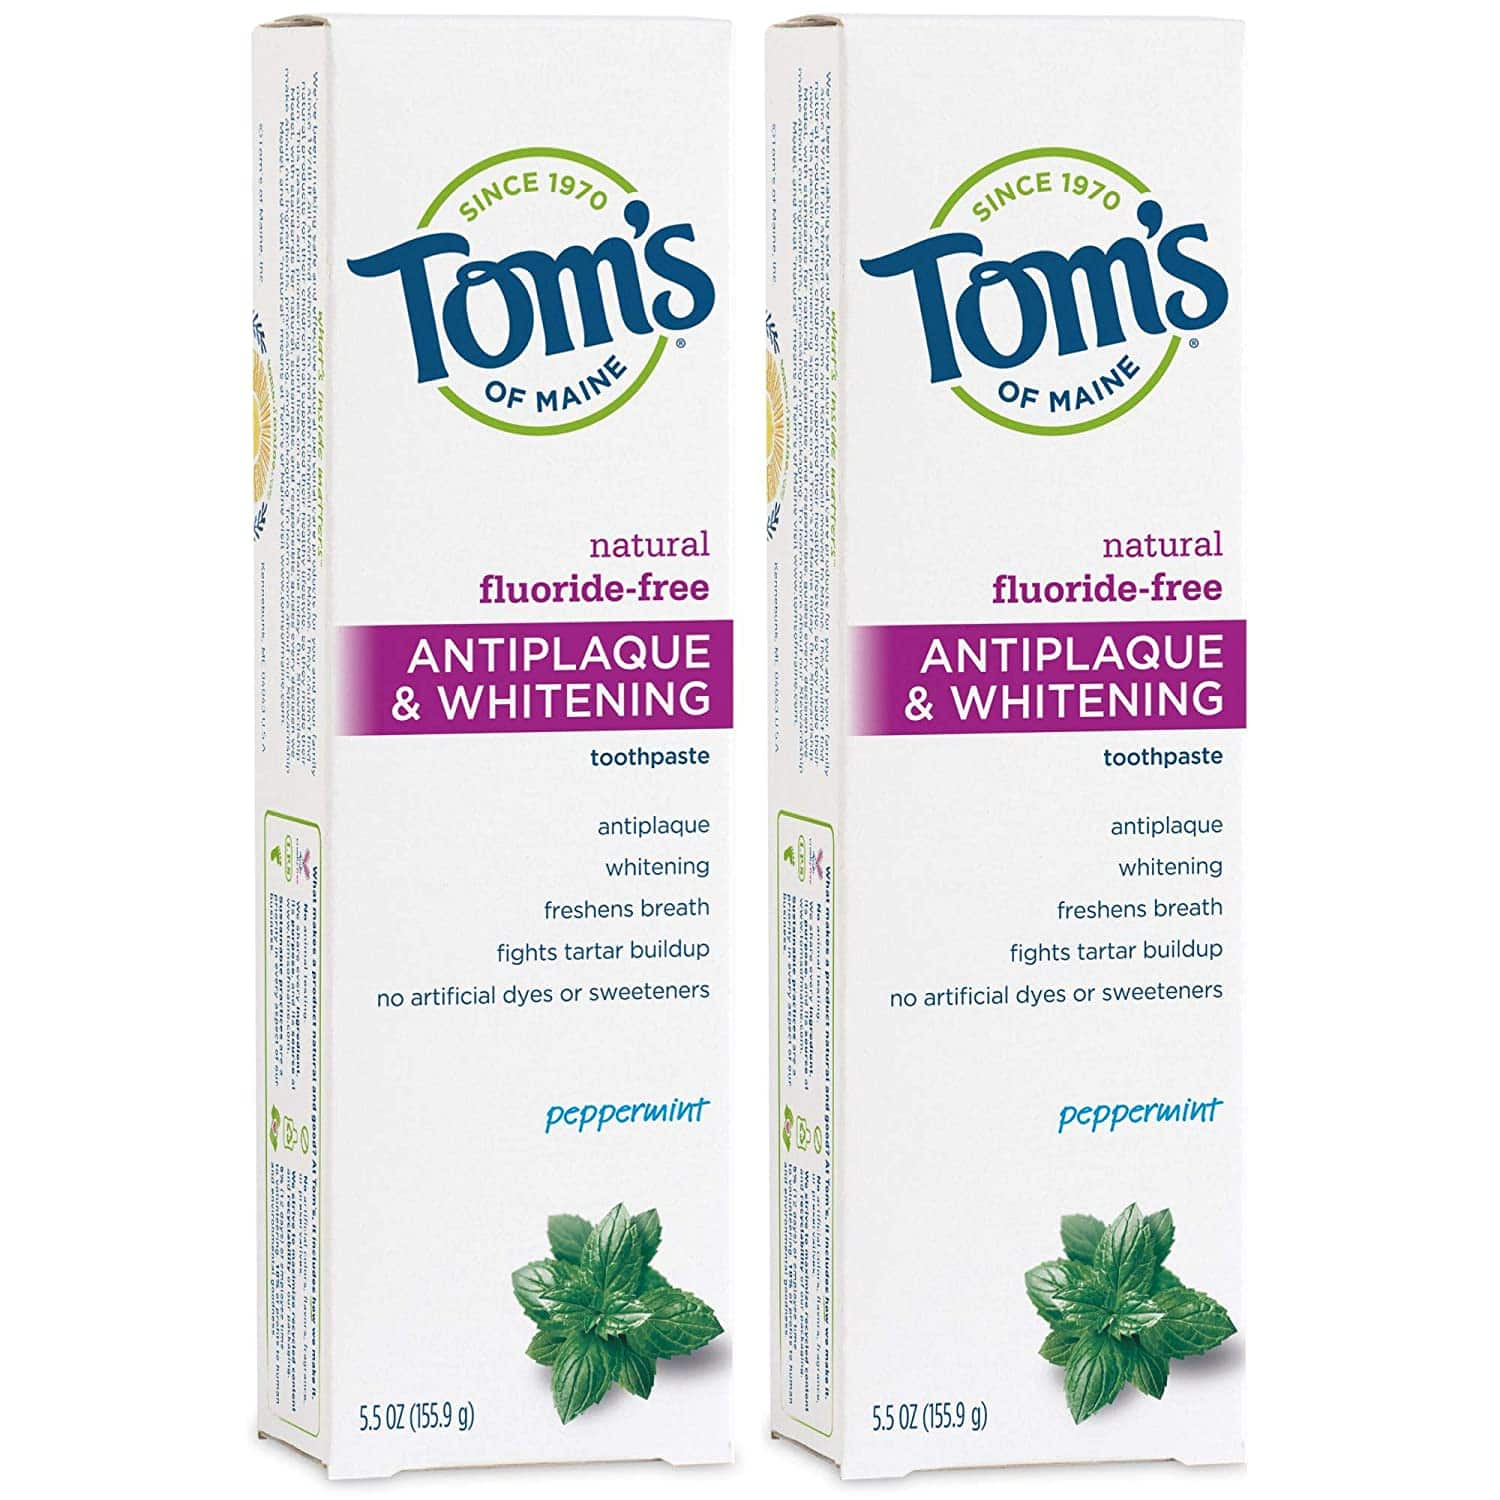 2-Pack 5.5-Oz Tom's of Maine Fluoride Free Toothpaste (Peppermint) $5.60 + Free Shipping w/ Prime or $25+